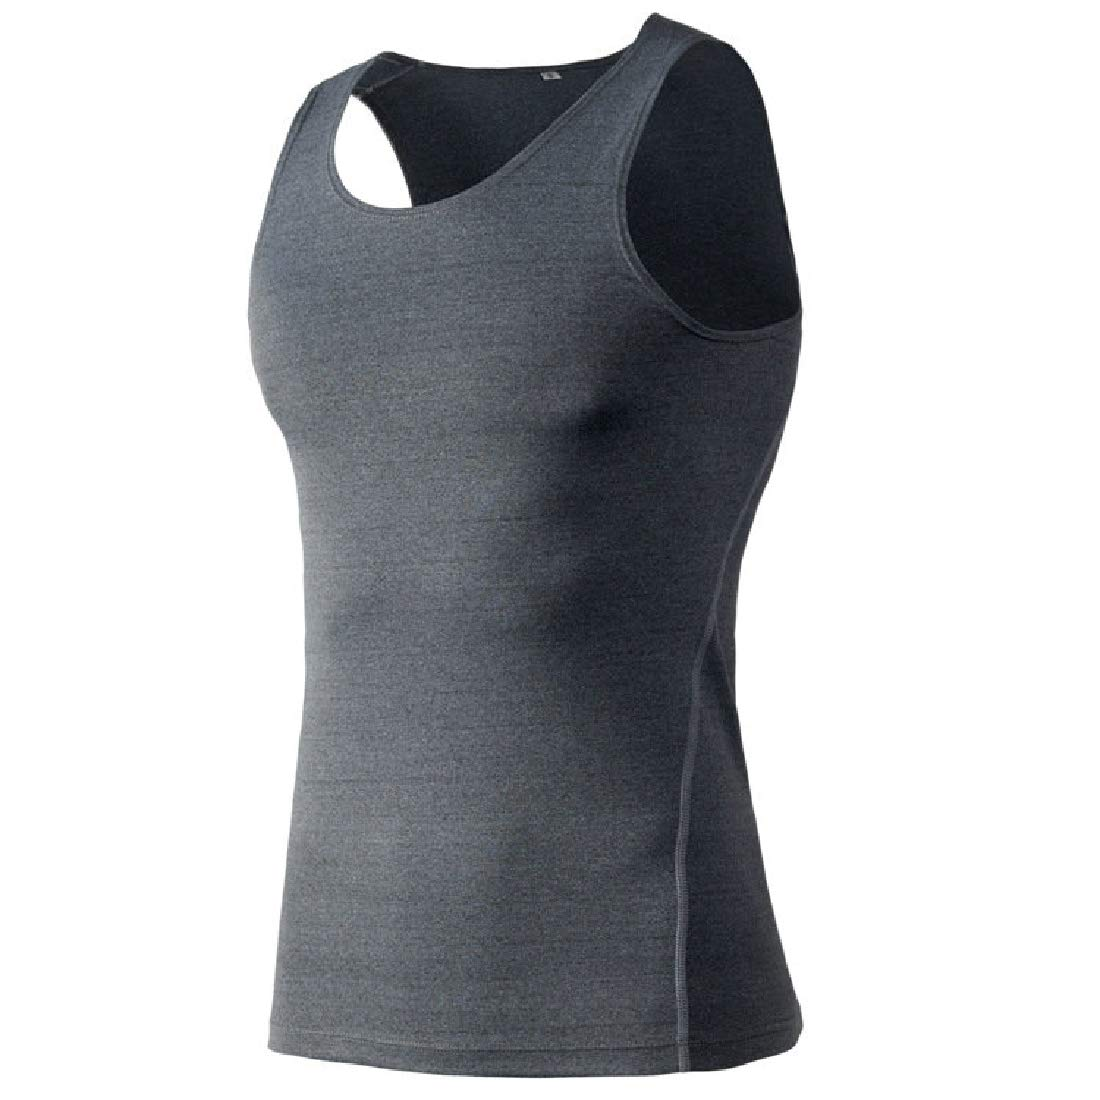 Zantt Mens Running Trainning Exercise Dry Fit Solid Tank Top Cami Blouse Shirt